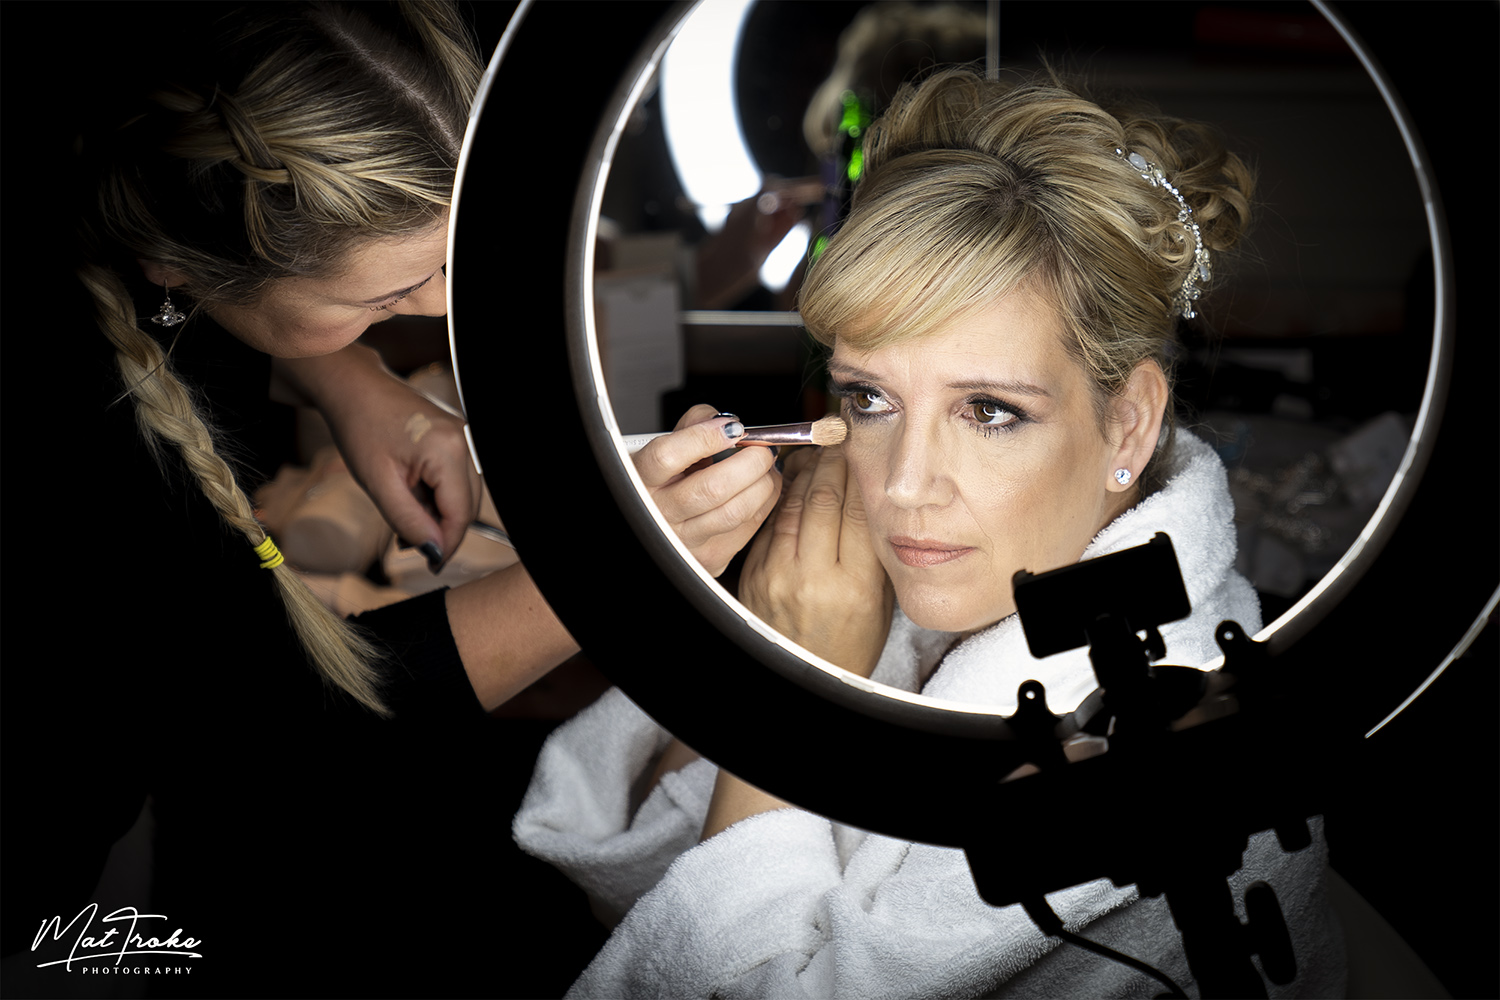 bridal_preperation_makeup_wedding_photography_mour_hotel_dekota_photographer_mansfield_sherwood.jpg